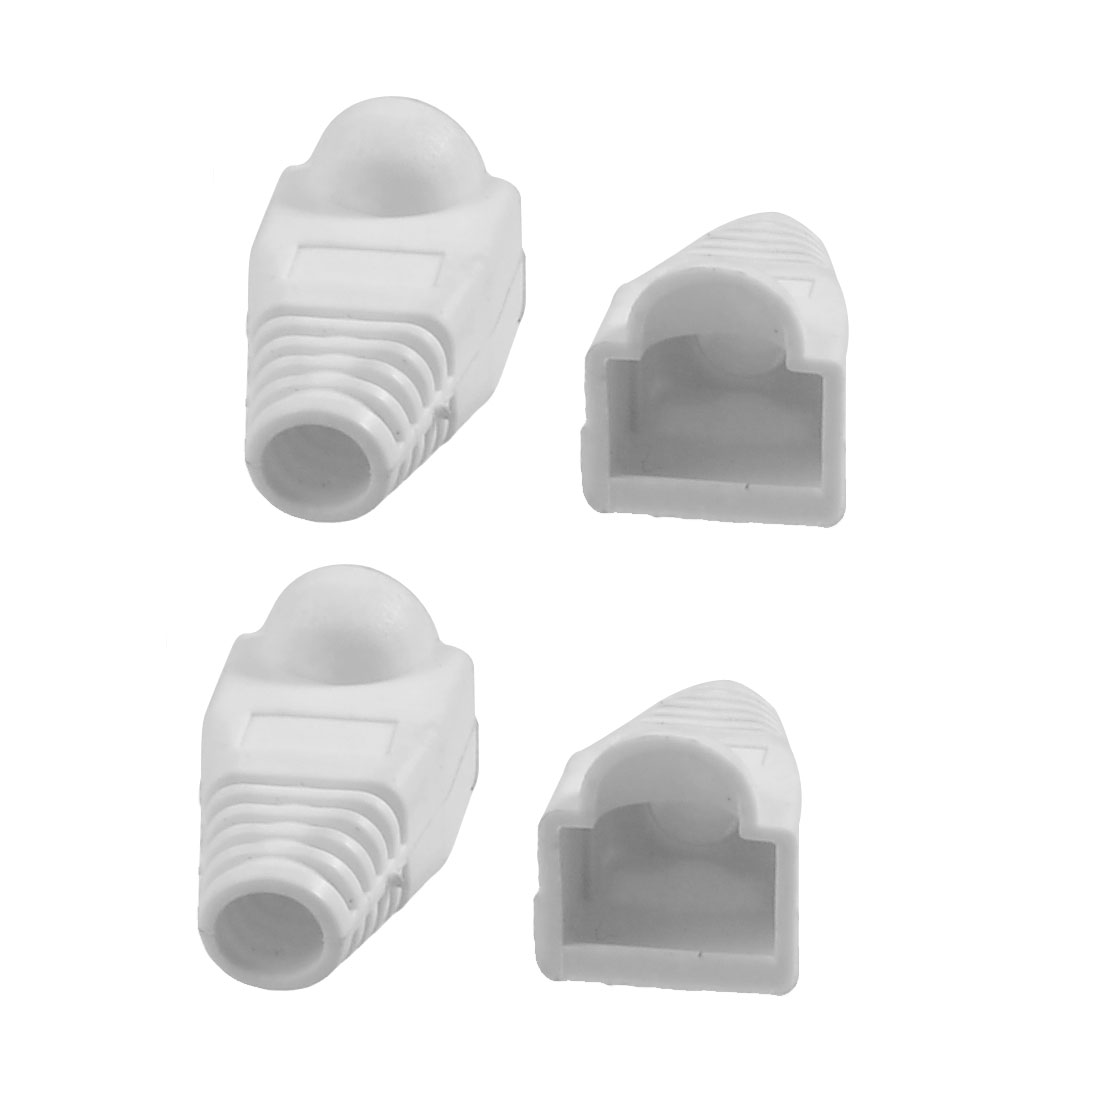 4 Pcs White Plastic Network Cable Boot Cap Cover for RJ-45 Connectors